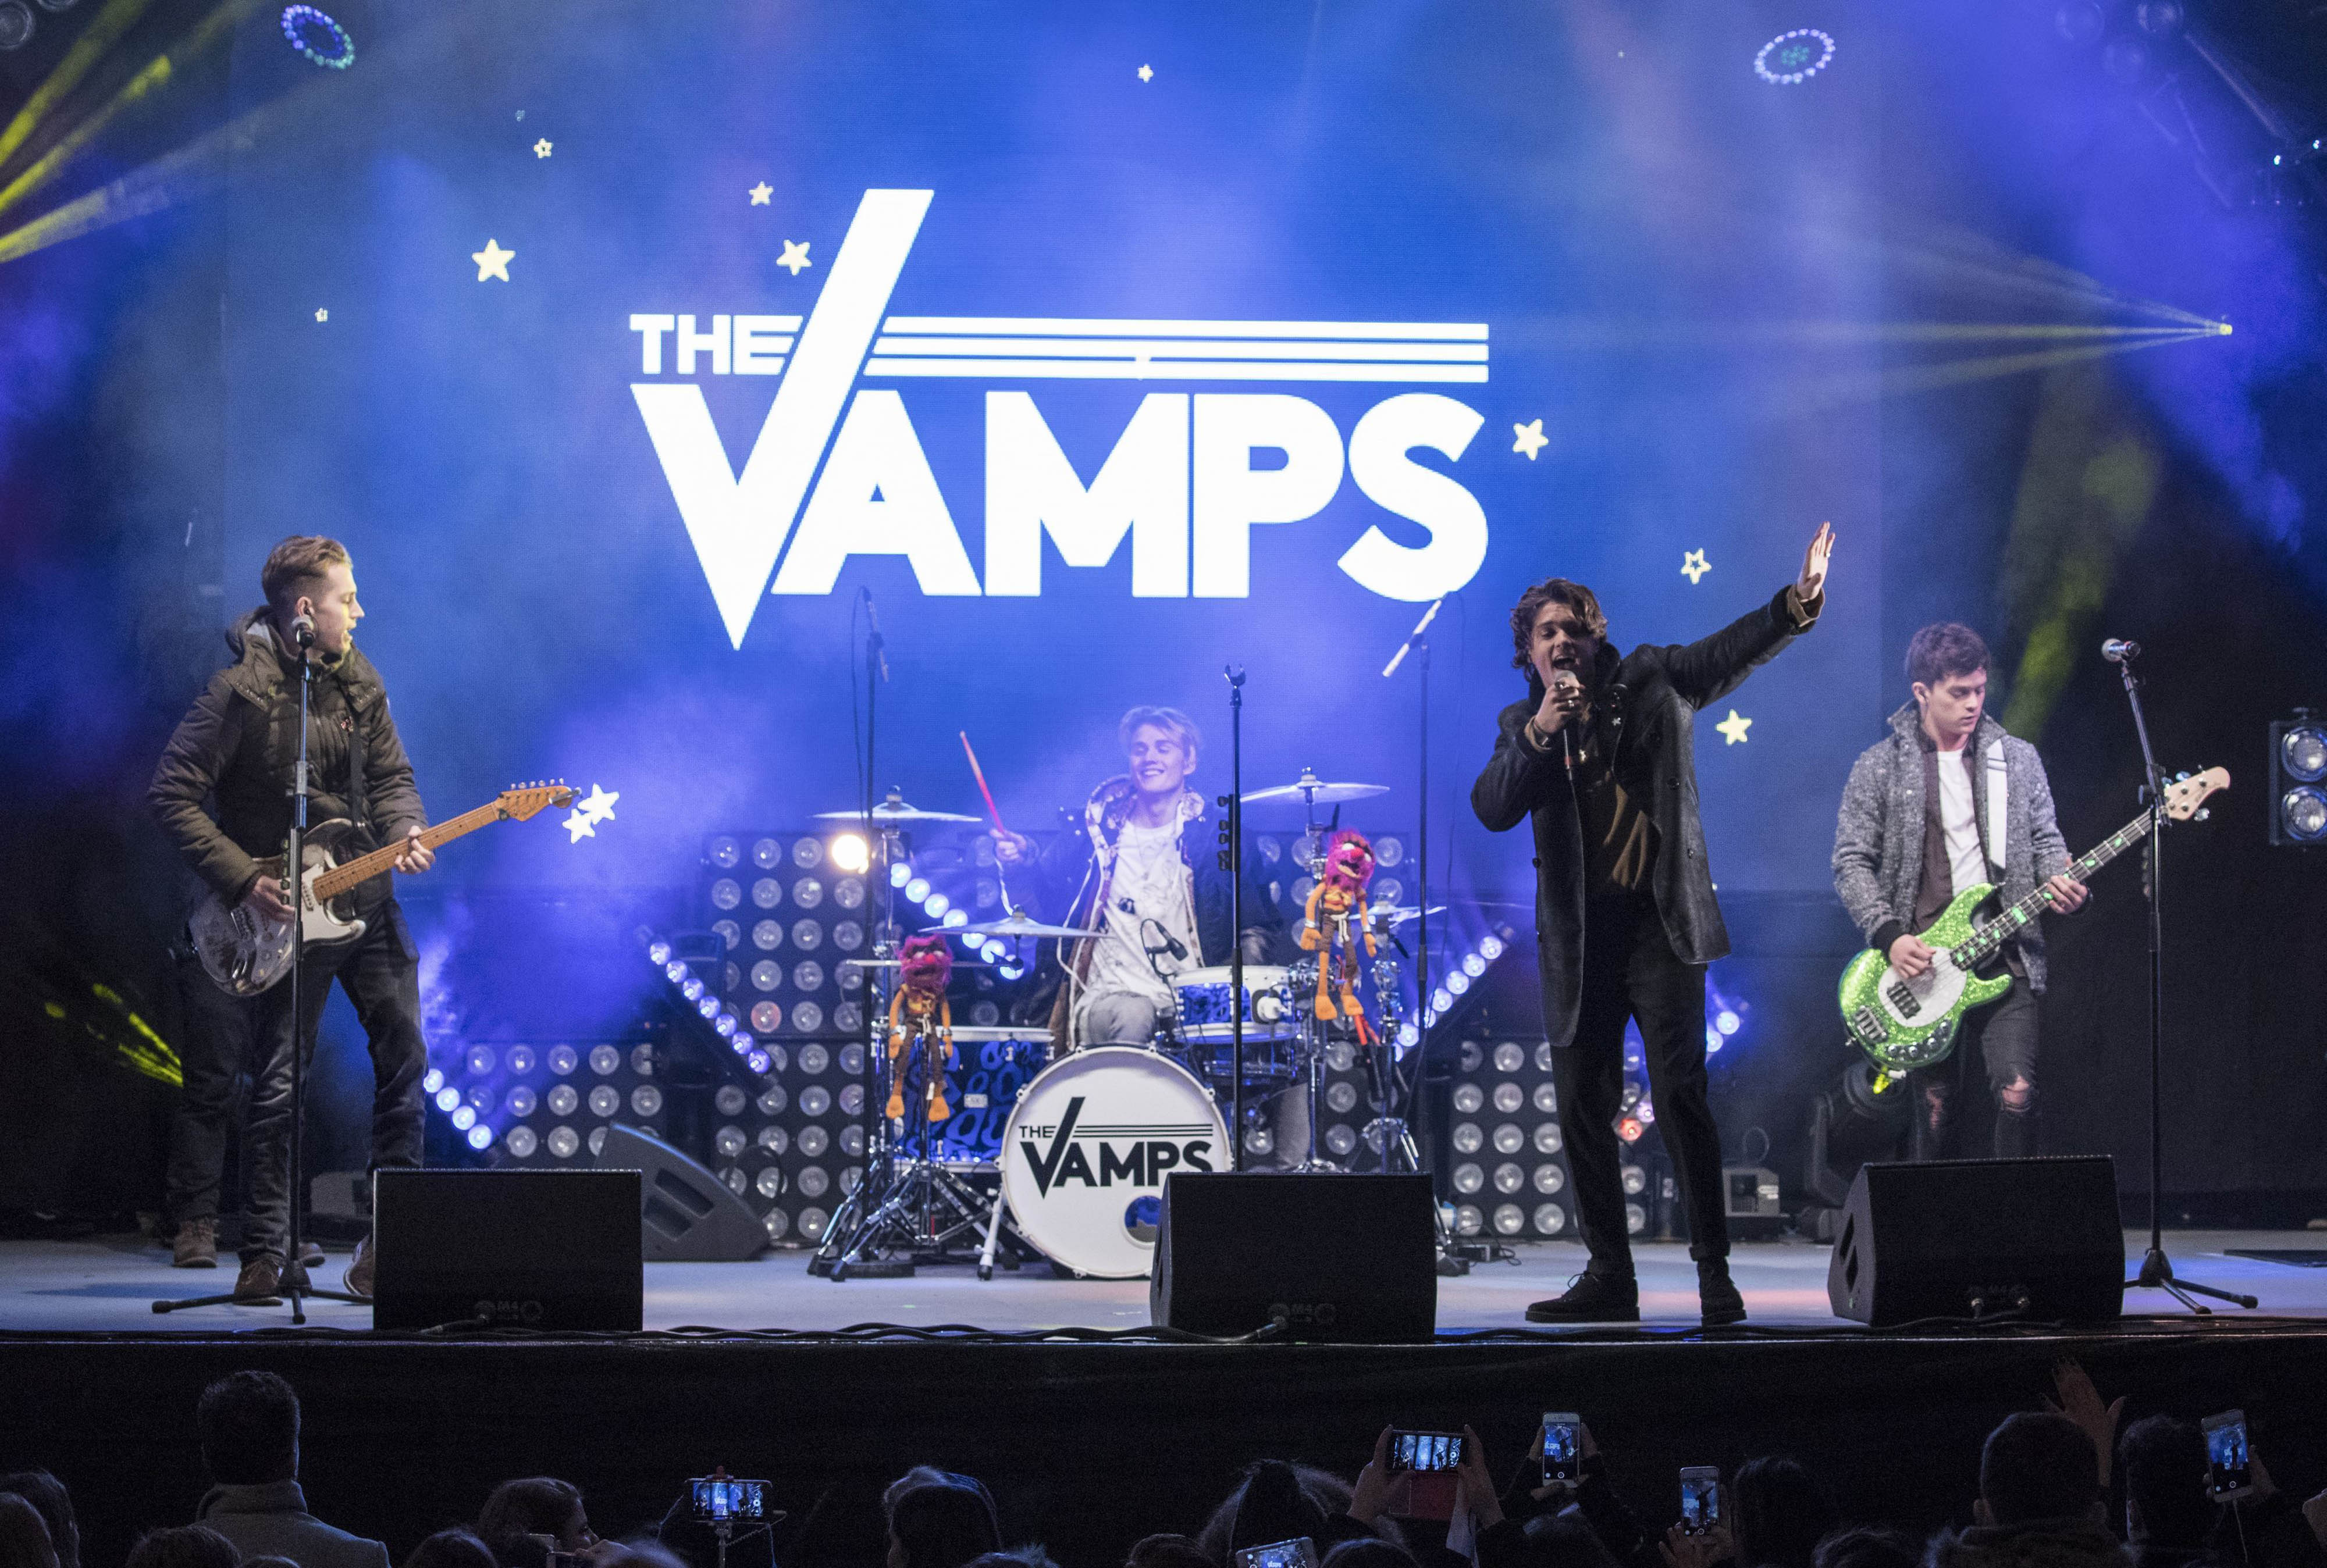 The Vamps performing at Oxford Street Christmas Lights ceremony